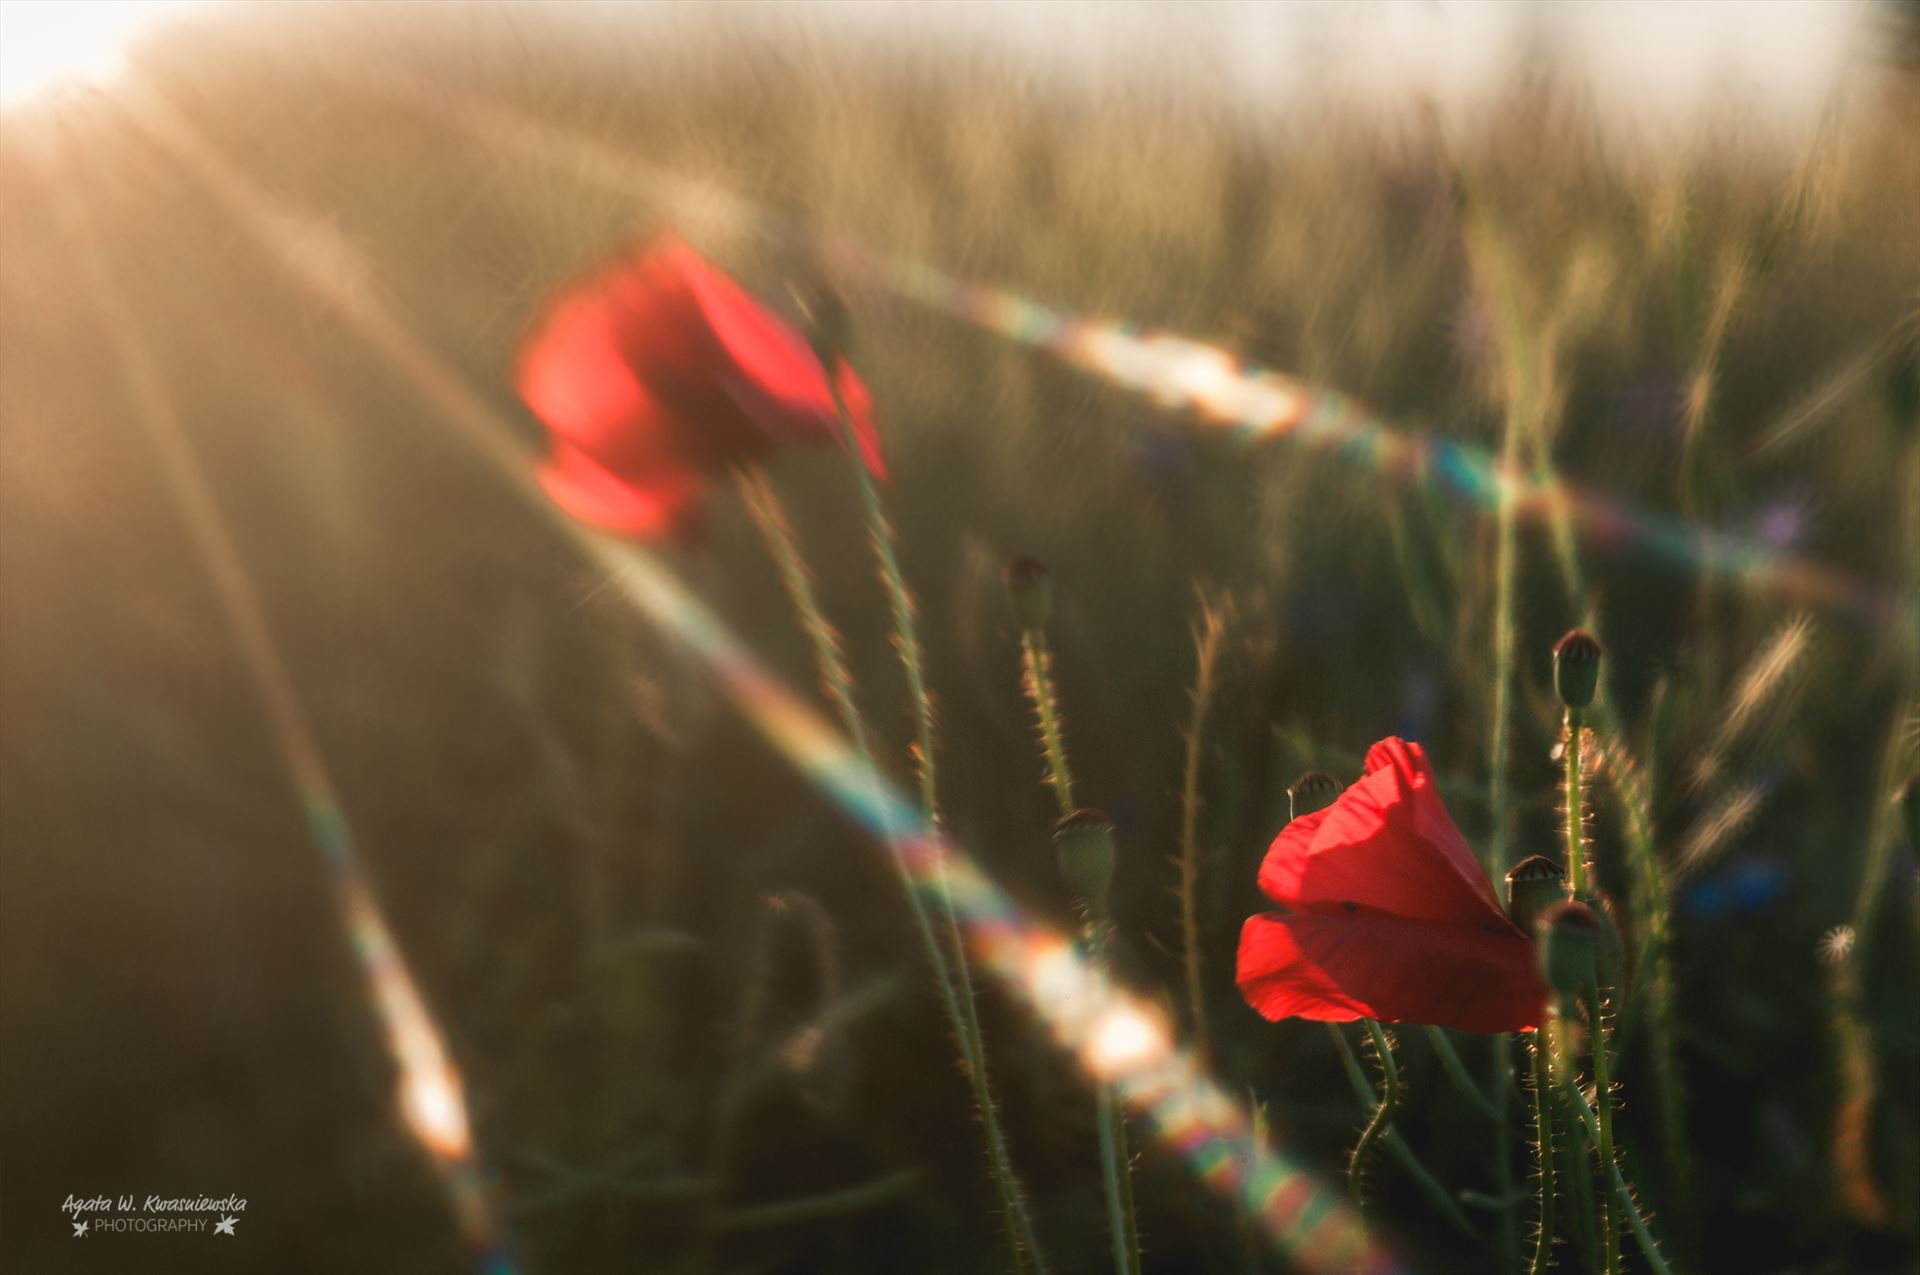 Flares over the poppies -  by Agata W. Kwasniewska Photography